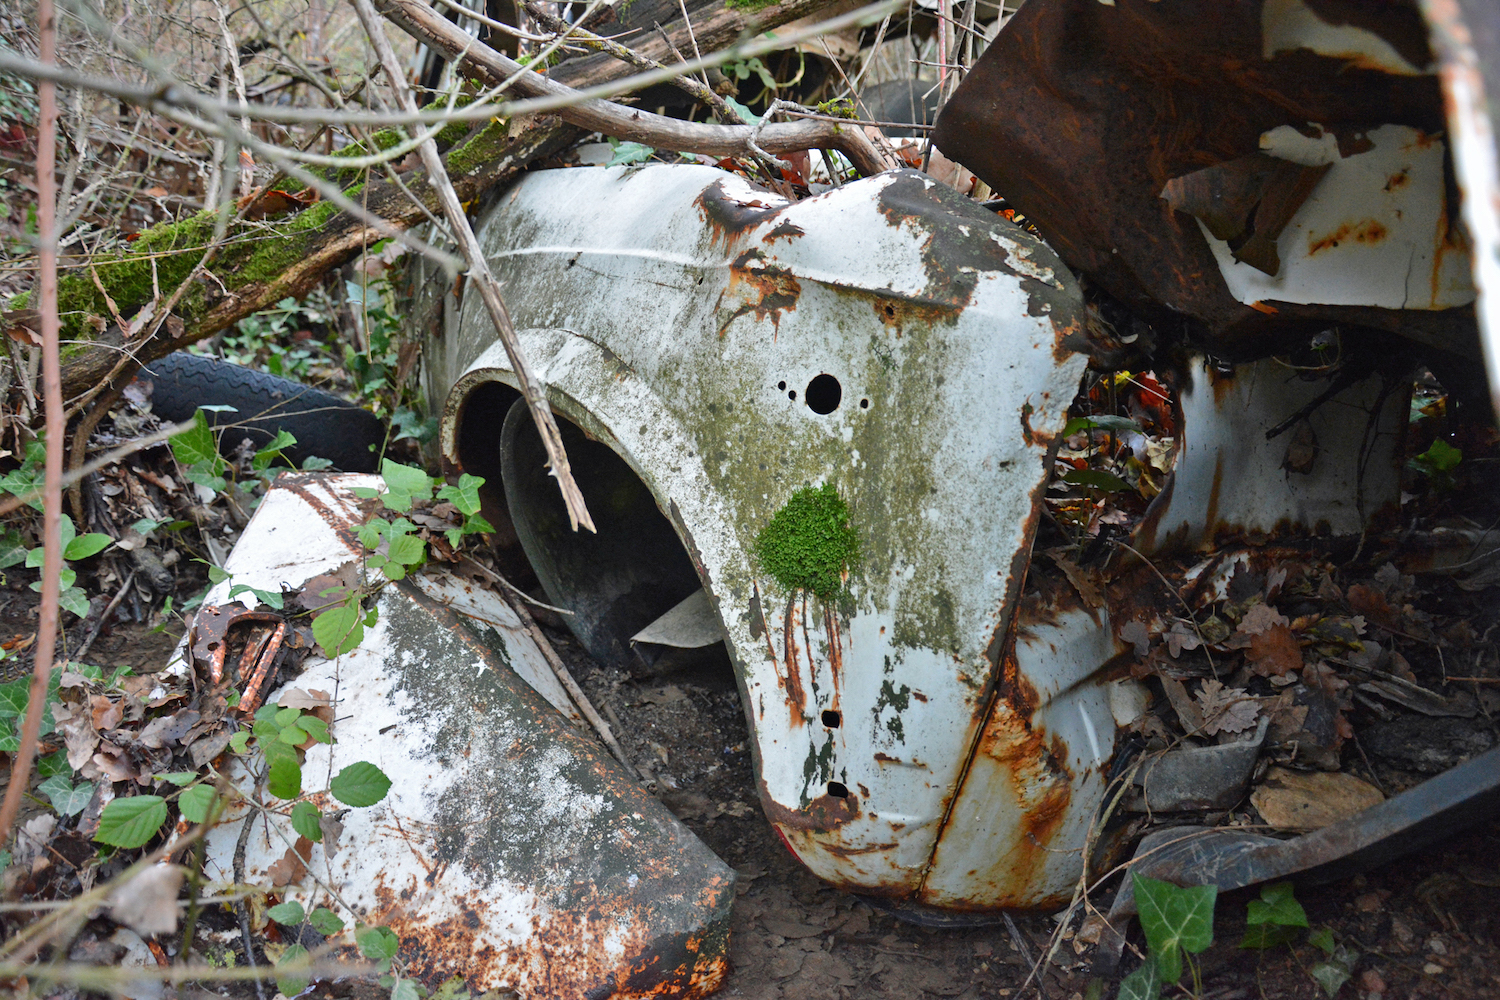 abandoned buried old car body close-up